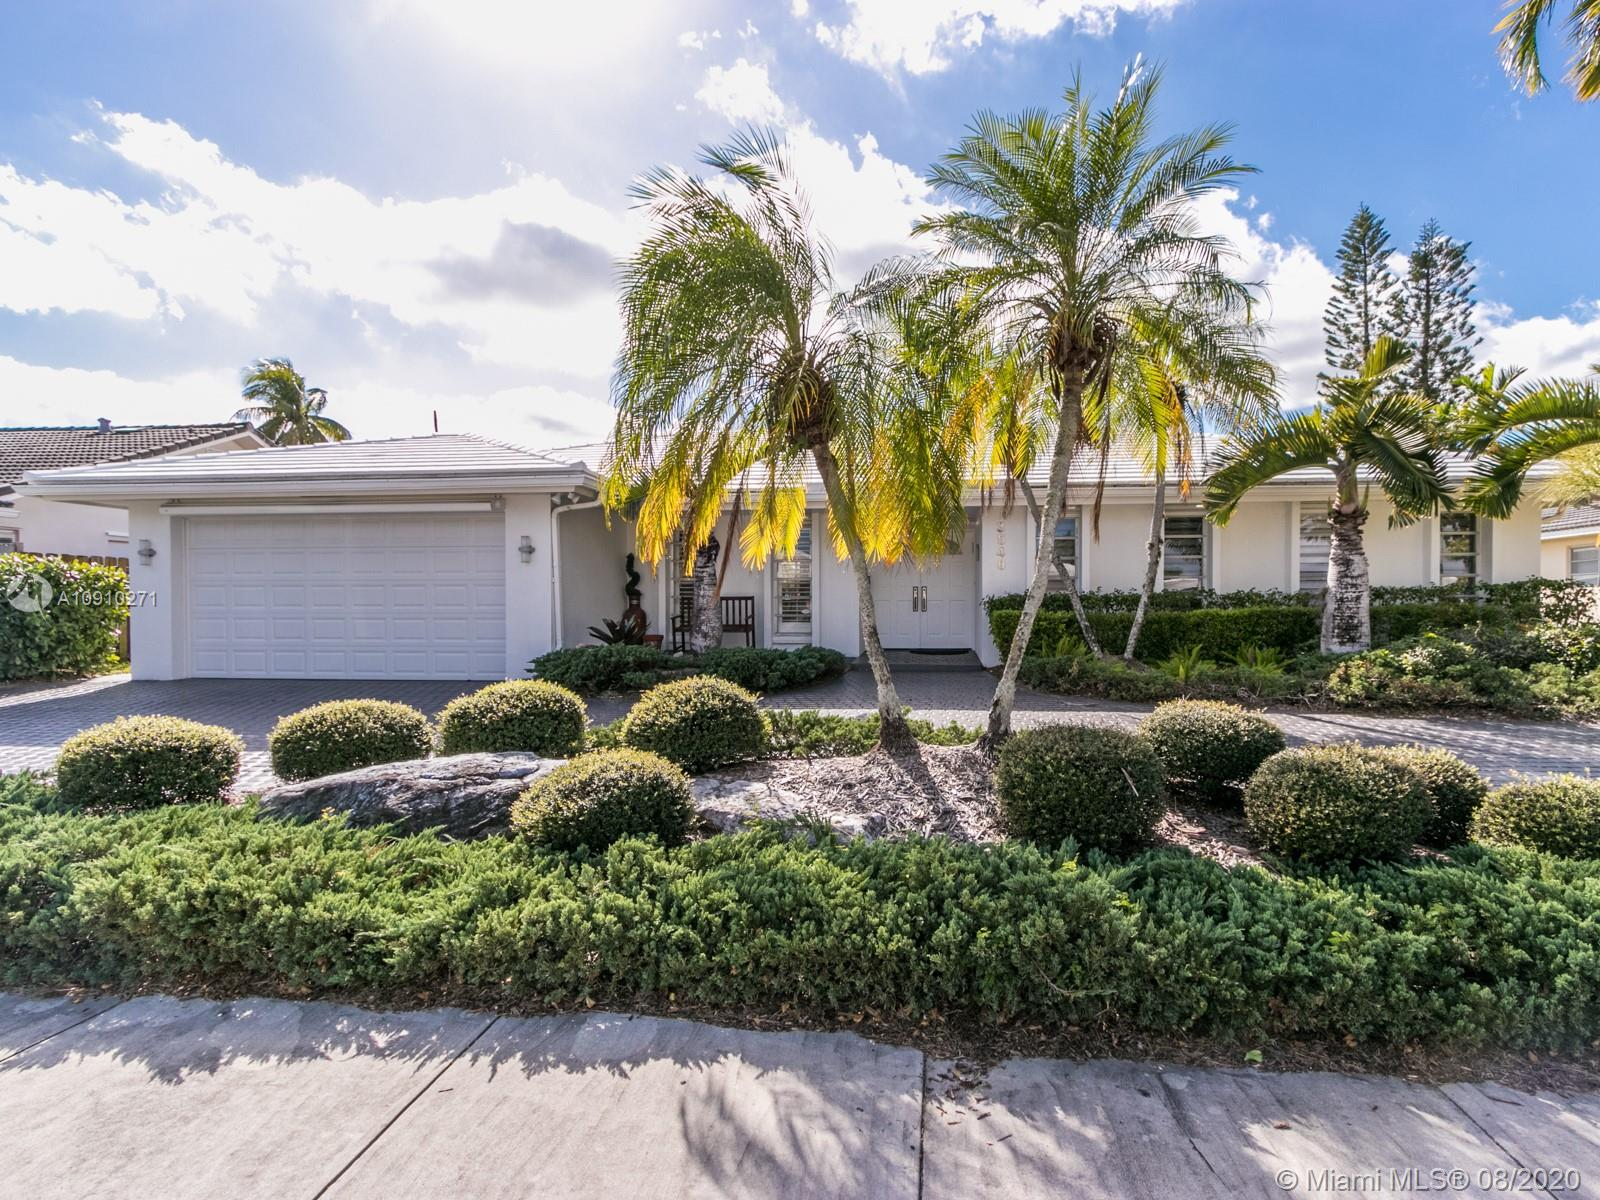 3540 N 53rd Ave, Hollywood FL 33021